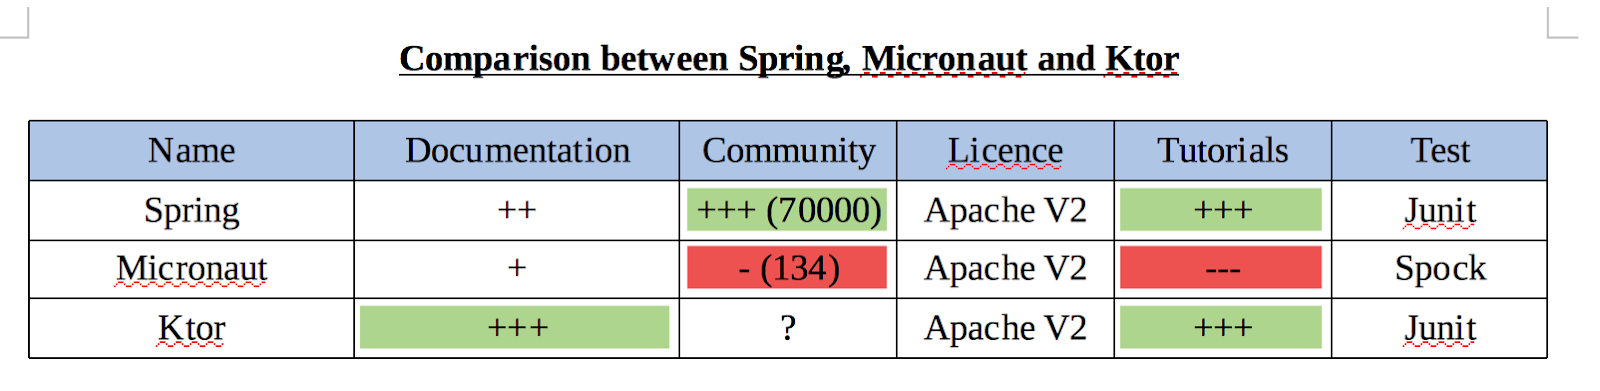 Comparison between Spring, Micronaut and Ktor